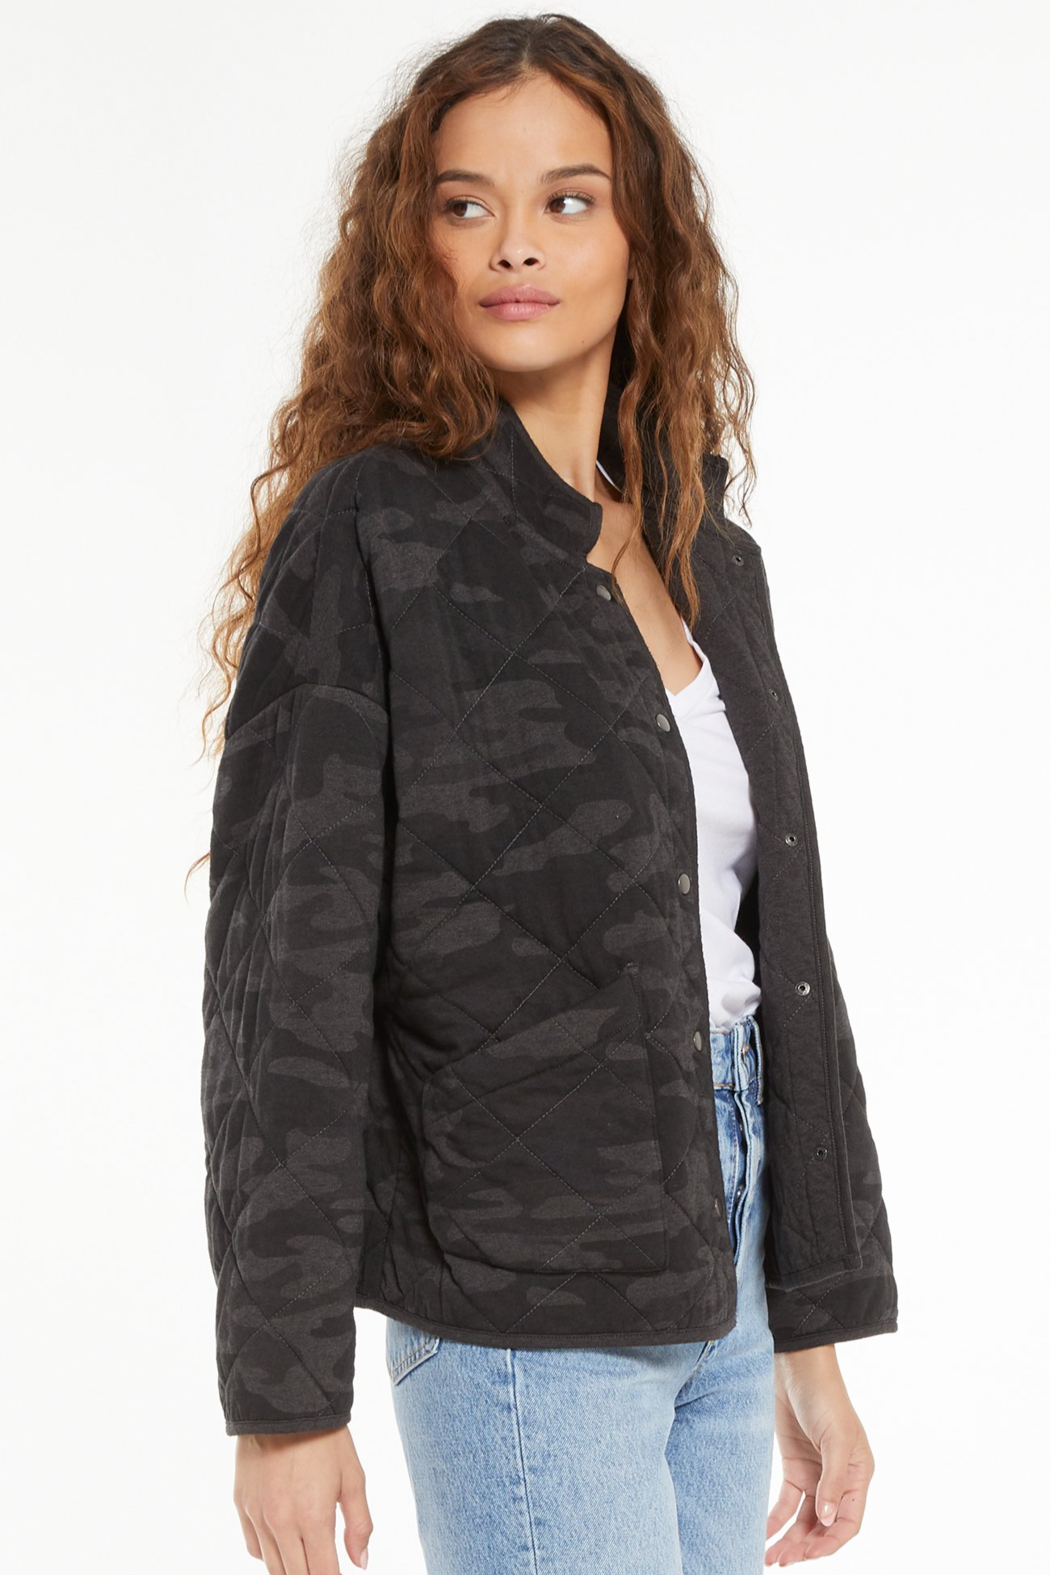 z supply Maya Camo Quilted Jacket - Side Cropped Image